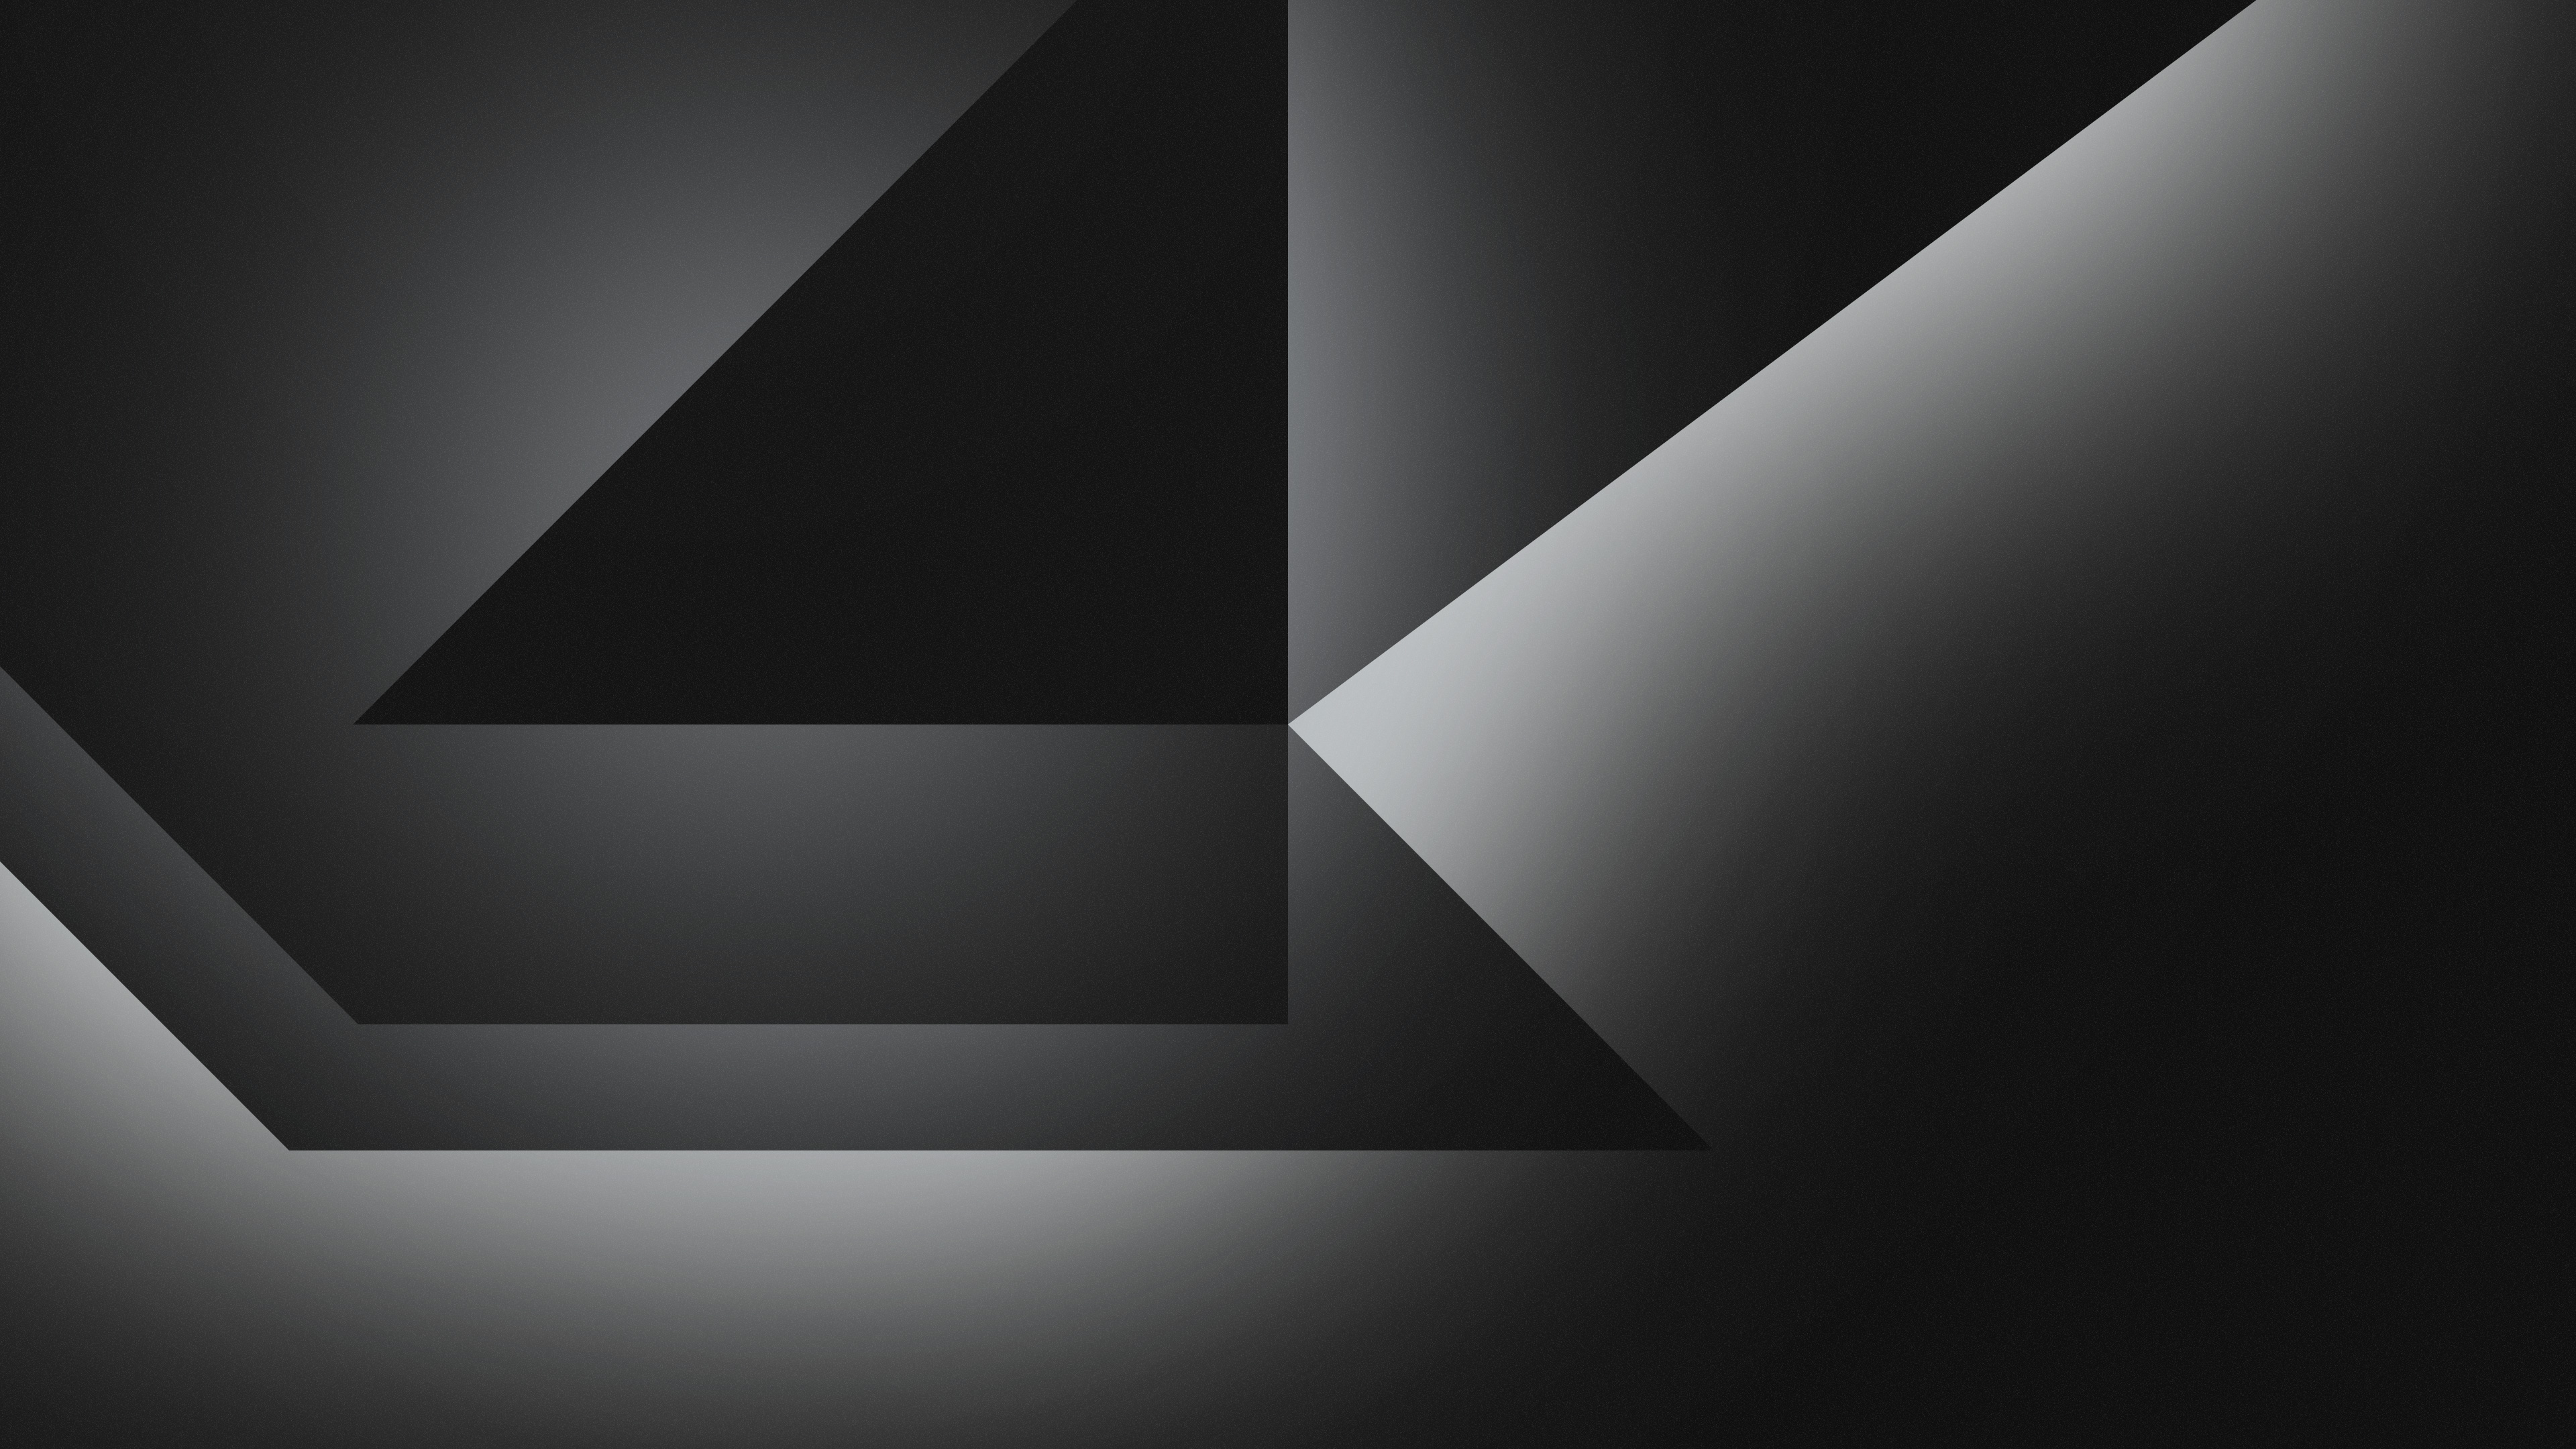 dark grey abstract shapes 4k 1539371364 - Dark Grey Abstract Shapes 4k - shapes wallpapers, hd-wallpapers, graphics wallpapers, digital art wallpapers, dark wallpapers, behance wallpapers, artist wallpapers, abstract wallpapers, 4k-wallpapers